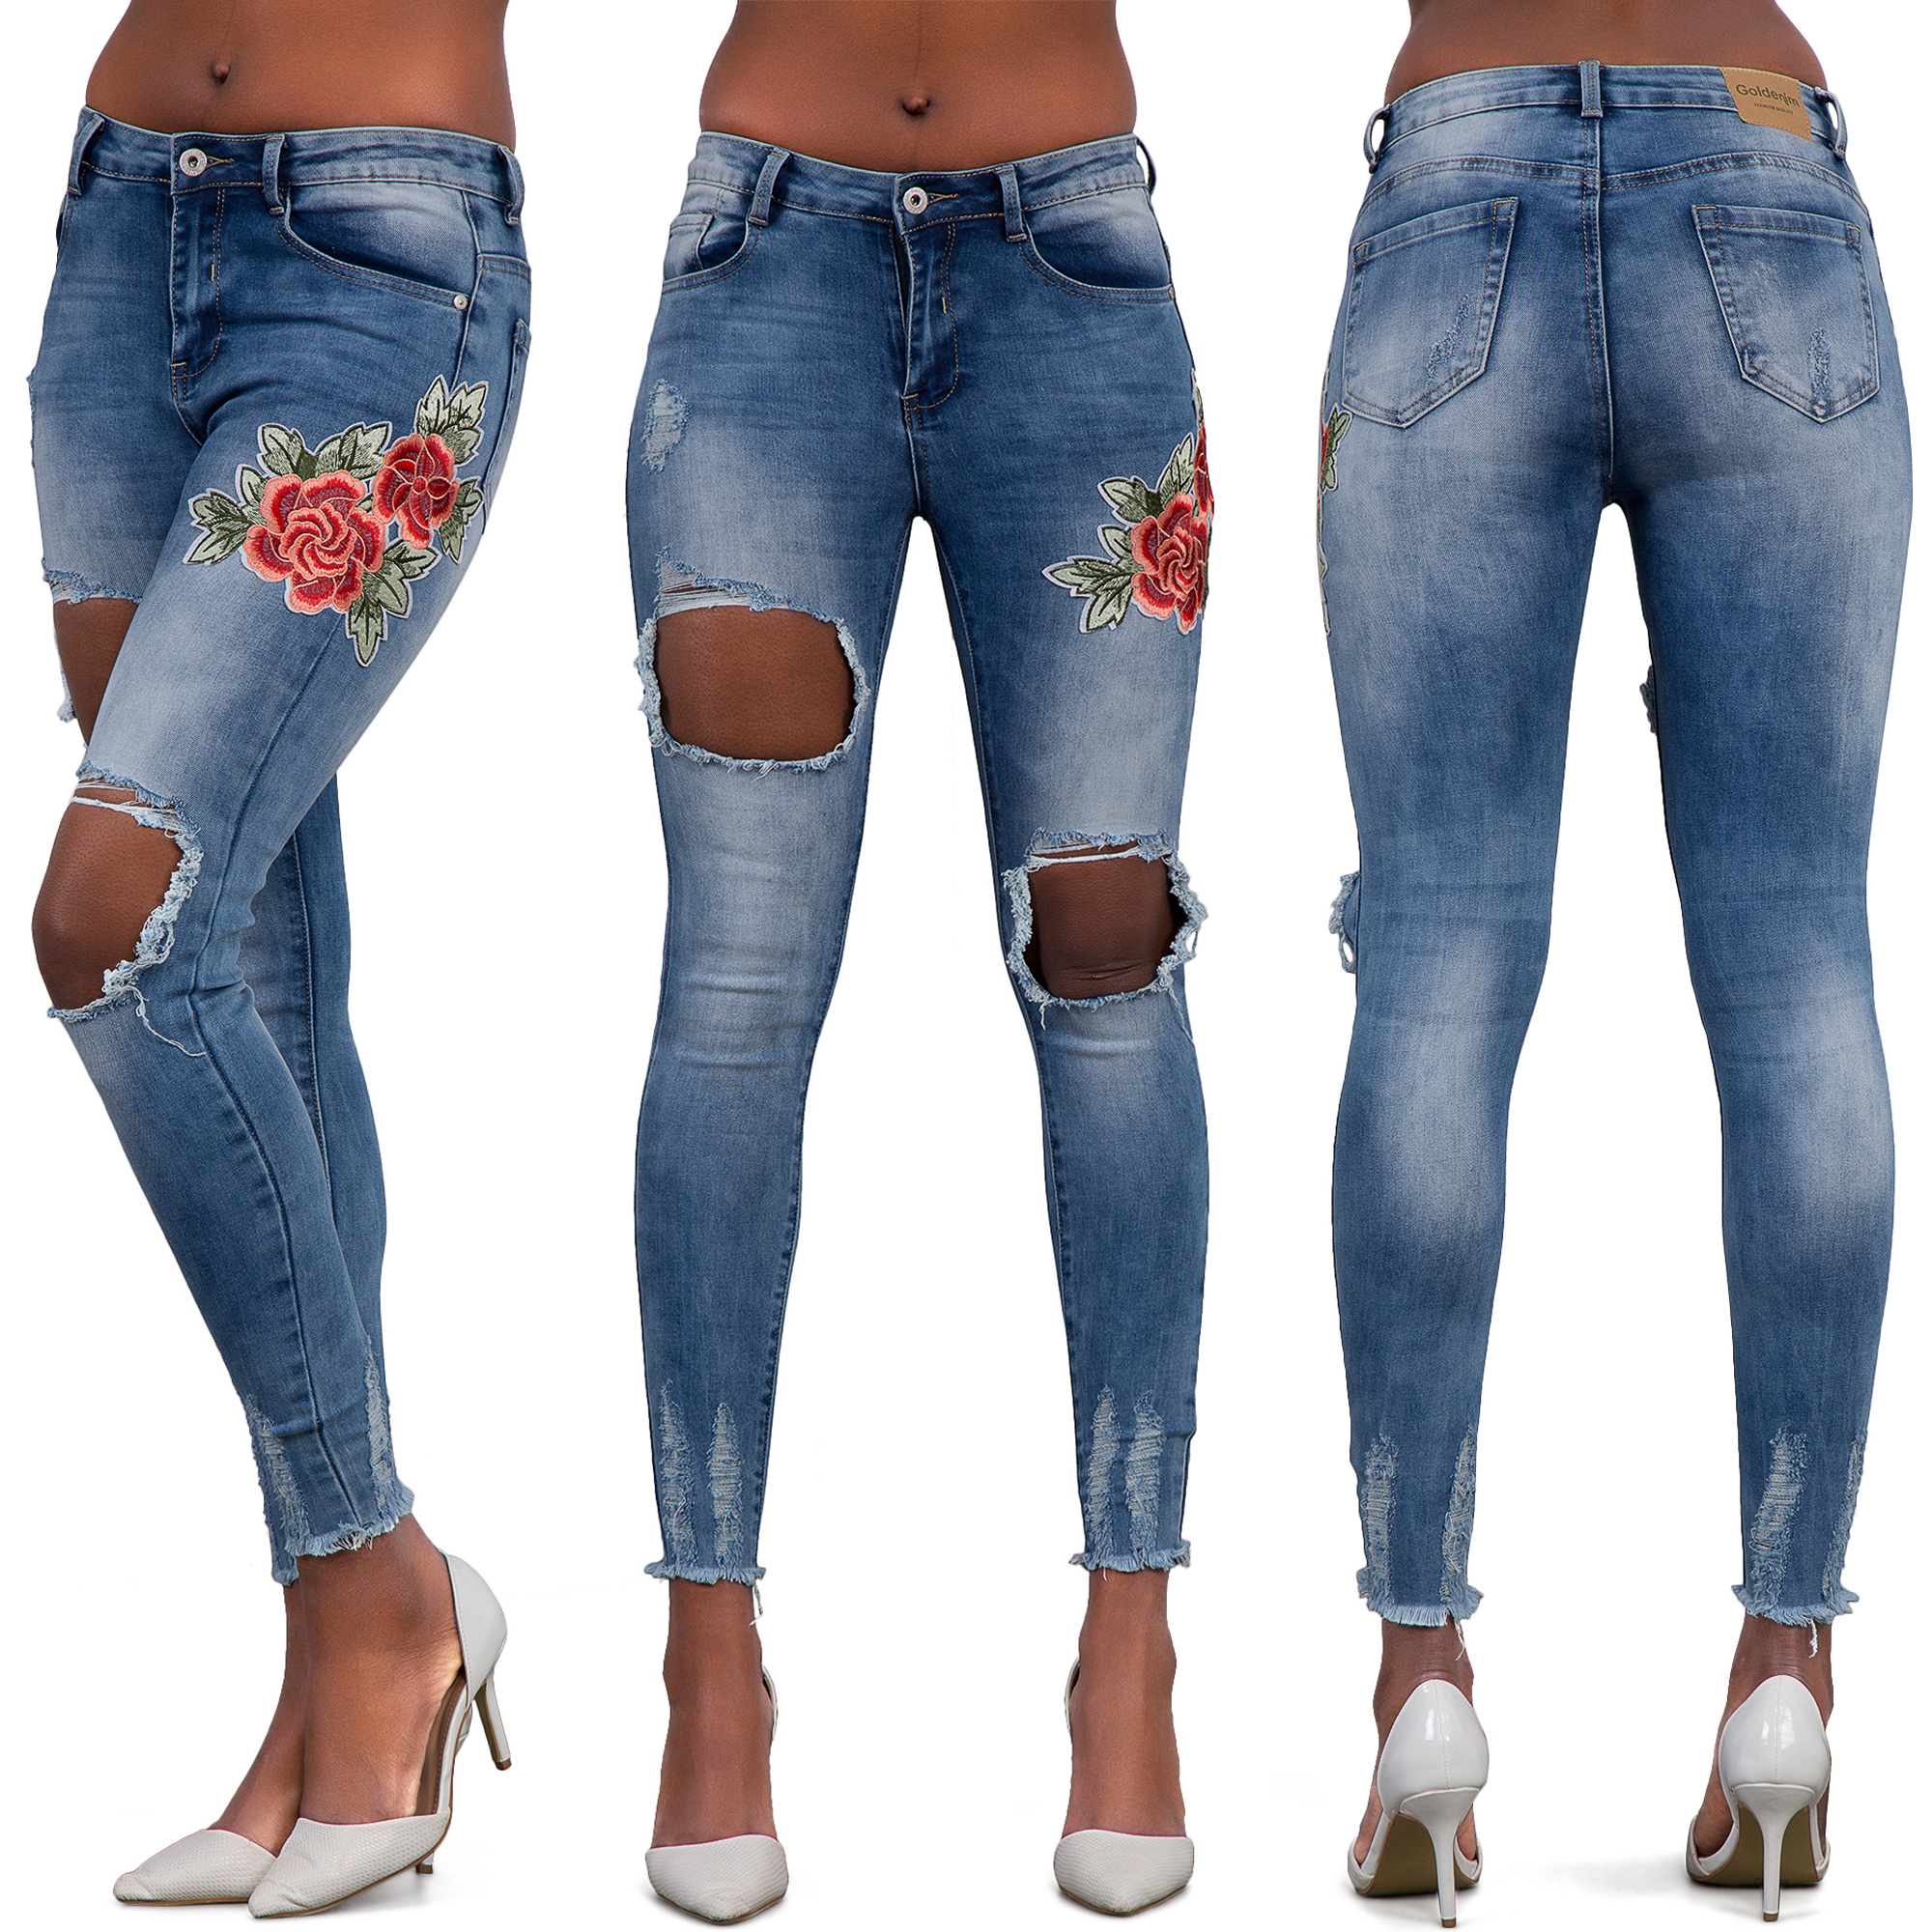 how to fix faded knees on jeans